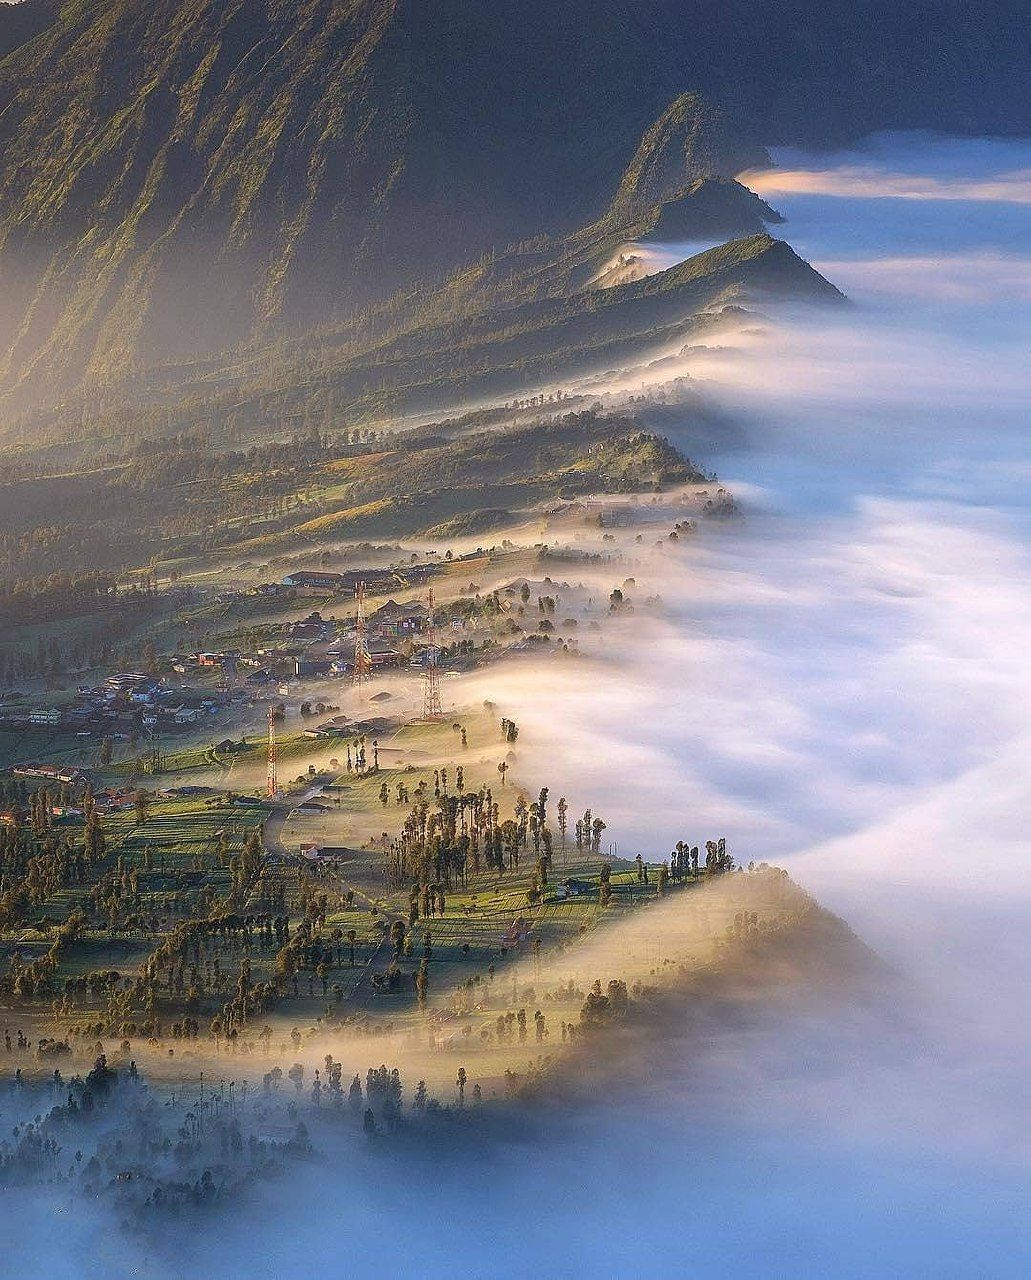 A beautiful view of cemoro lawang mount bromo in probolinggo east java indonesia photo by ig saragih erick